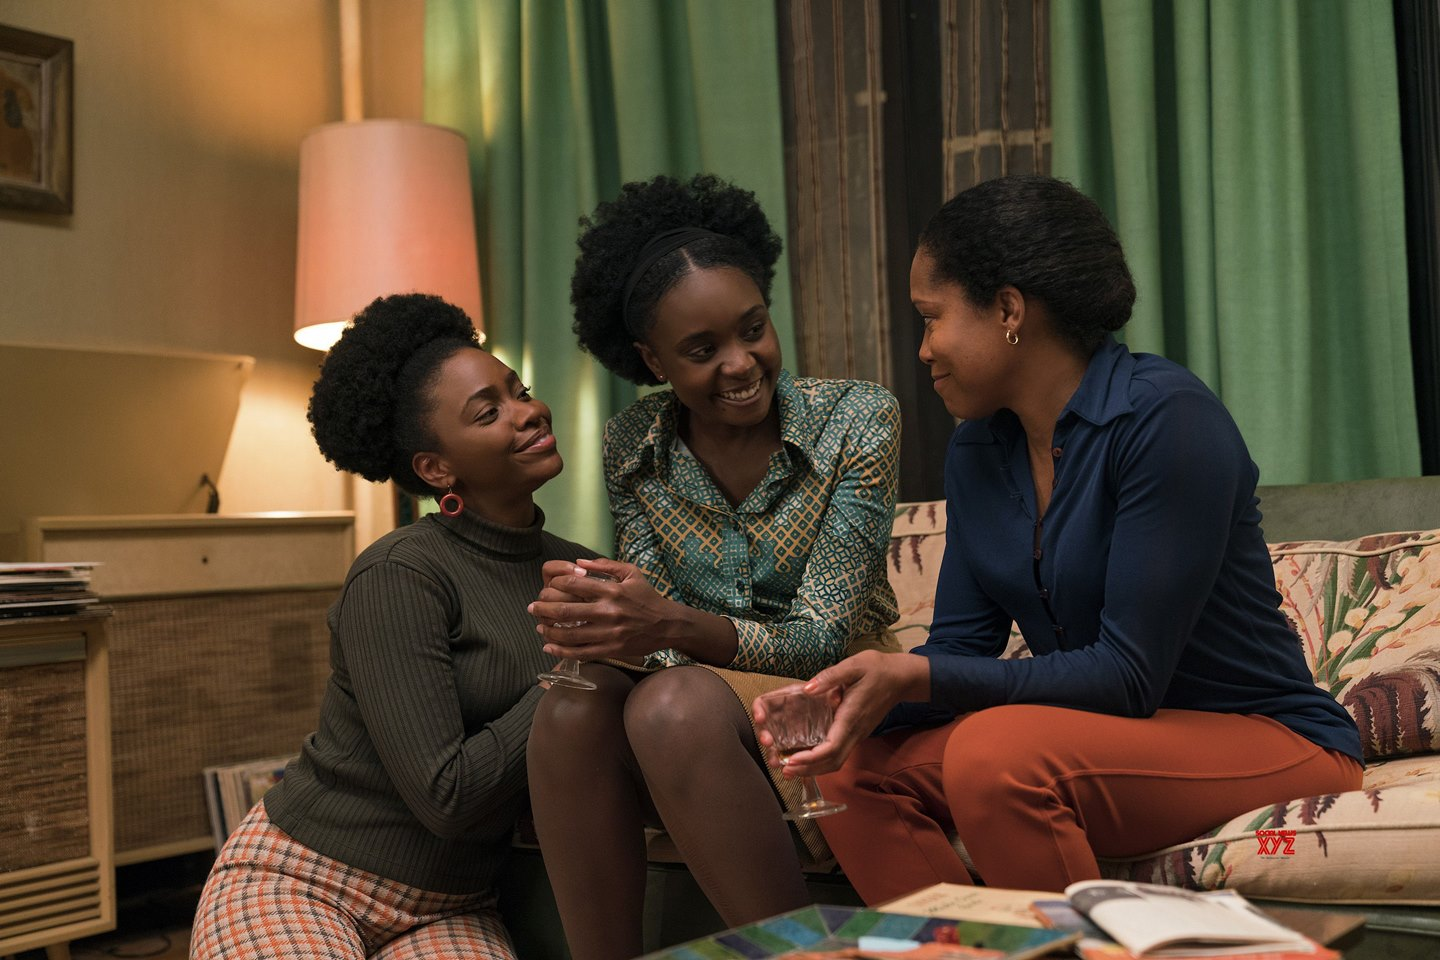 se-la-strada-potesse-parlare-2018-if-beale-street-could-talk-barry-jenkins-recensione-04